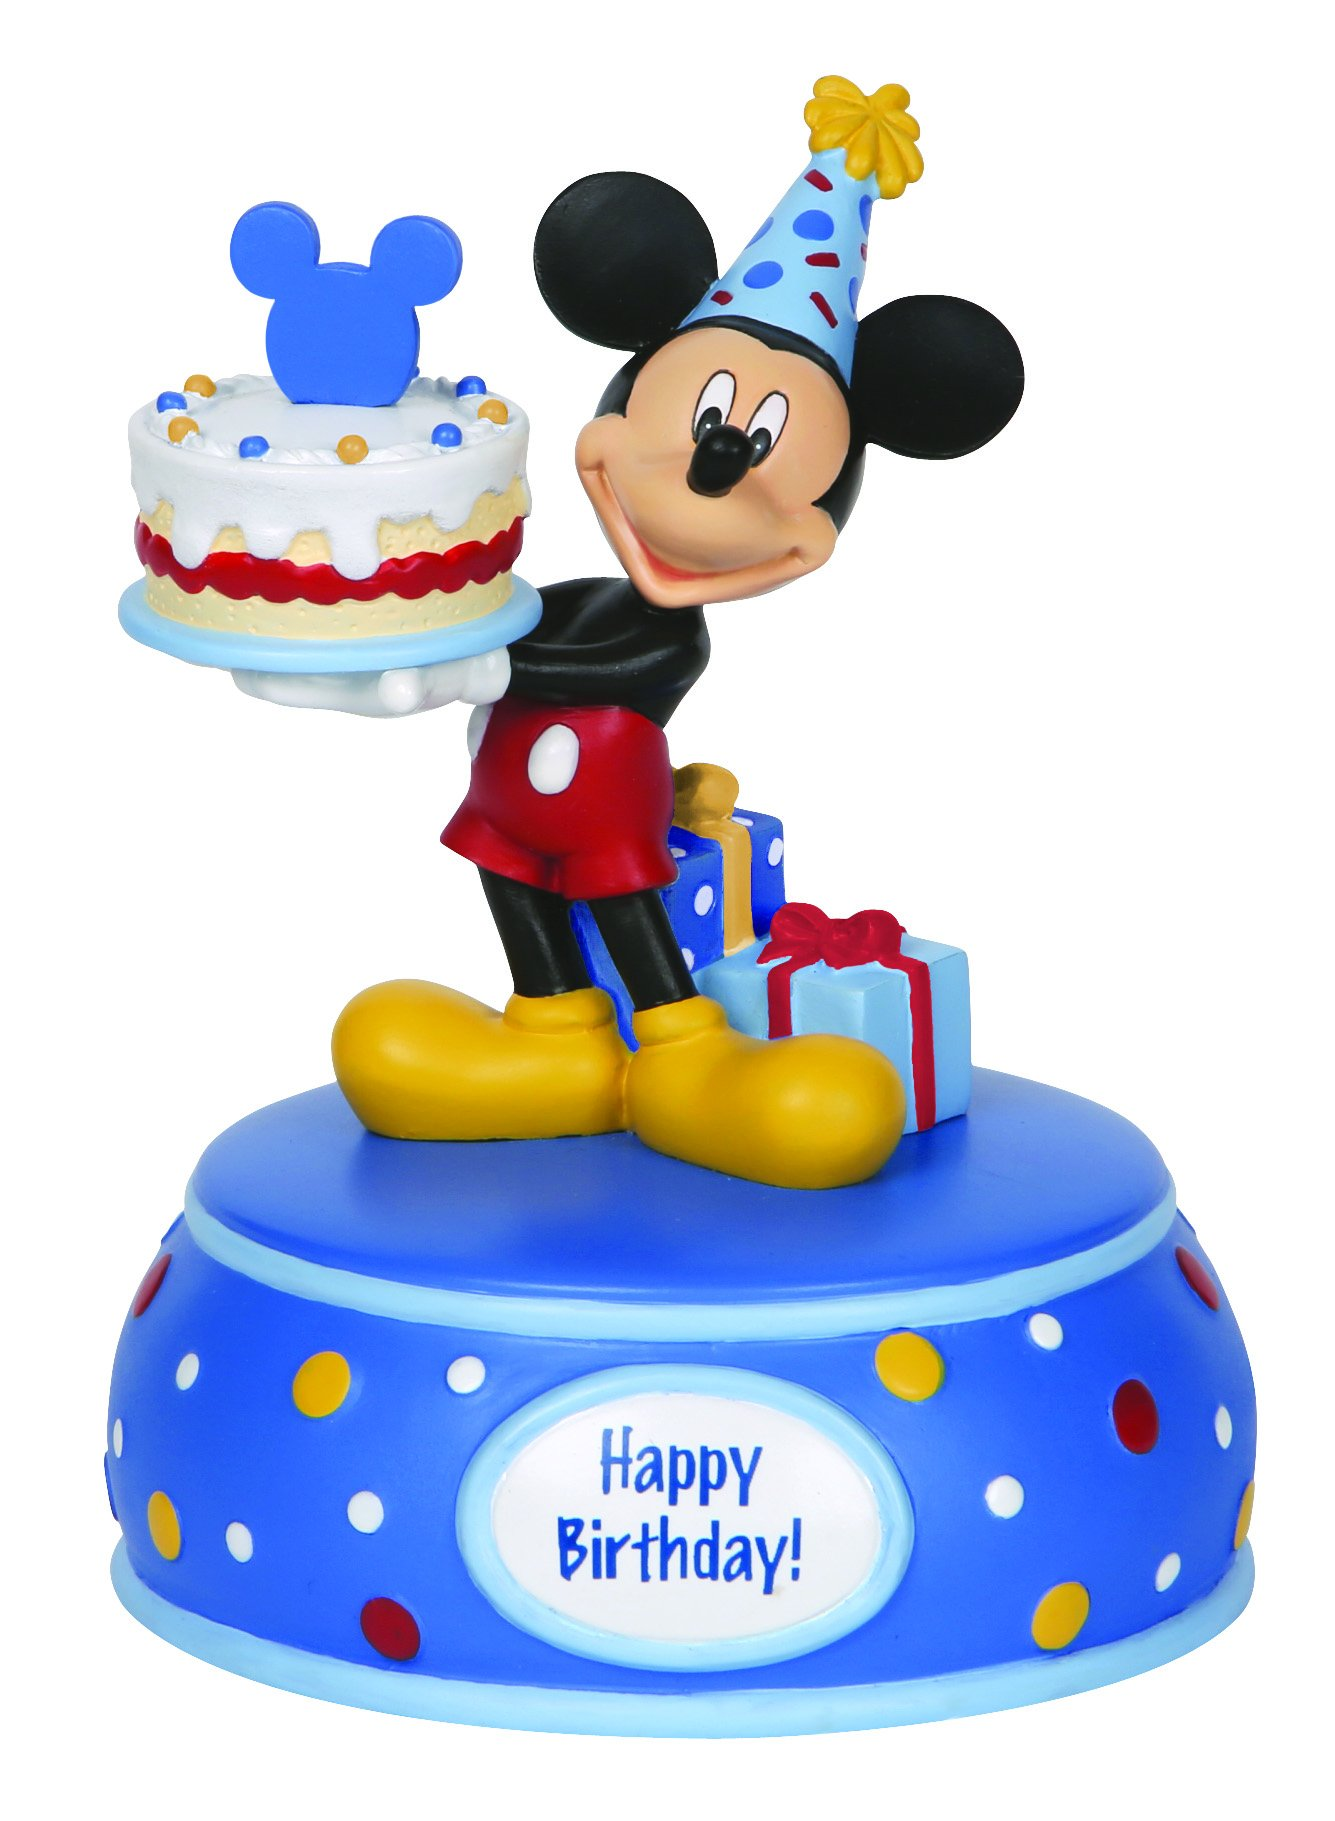 Cheap Mickey Mouse Birthday Cake Find Mickey Mouse Birthday Cake